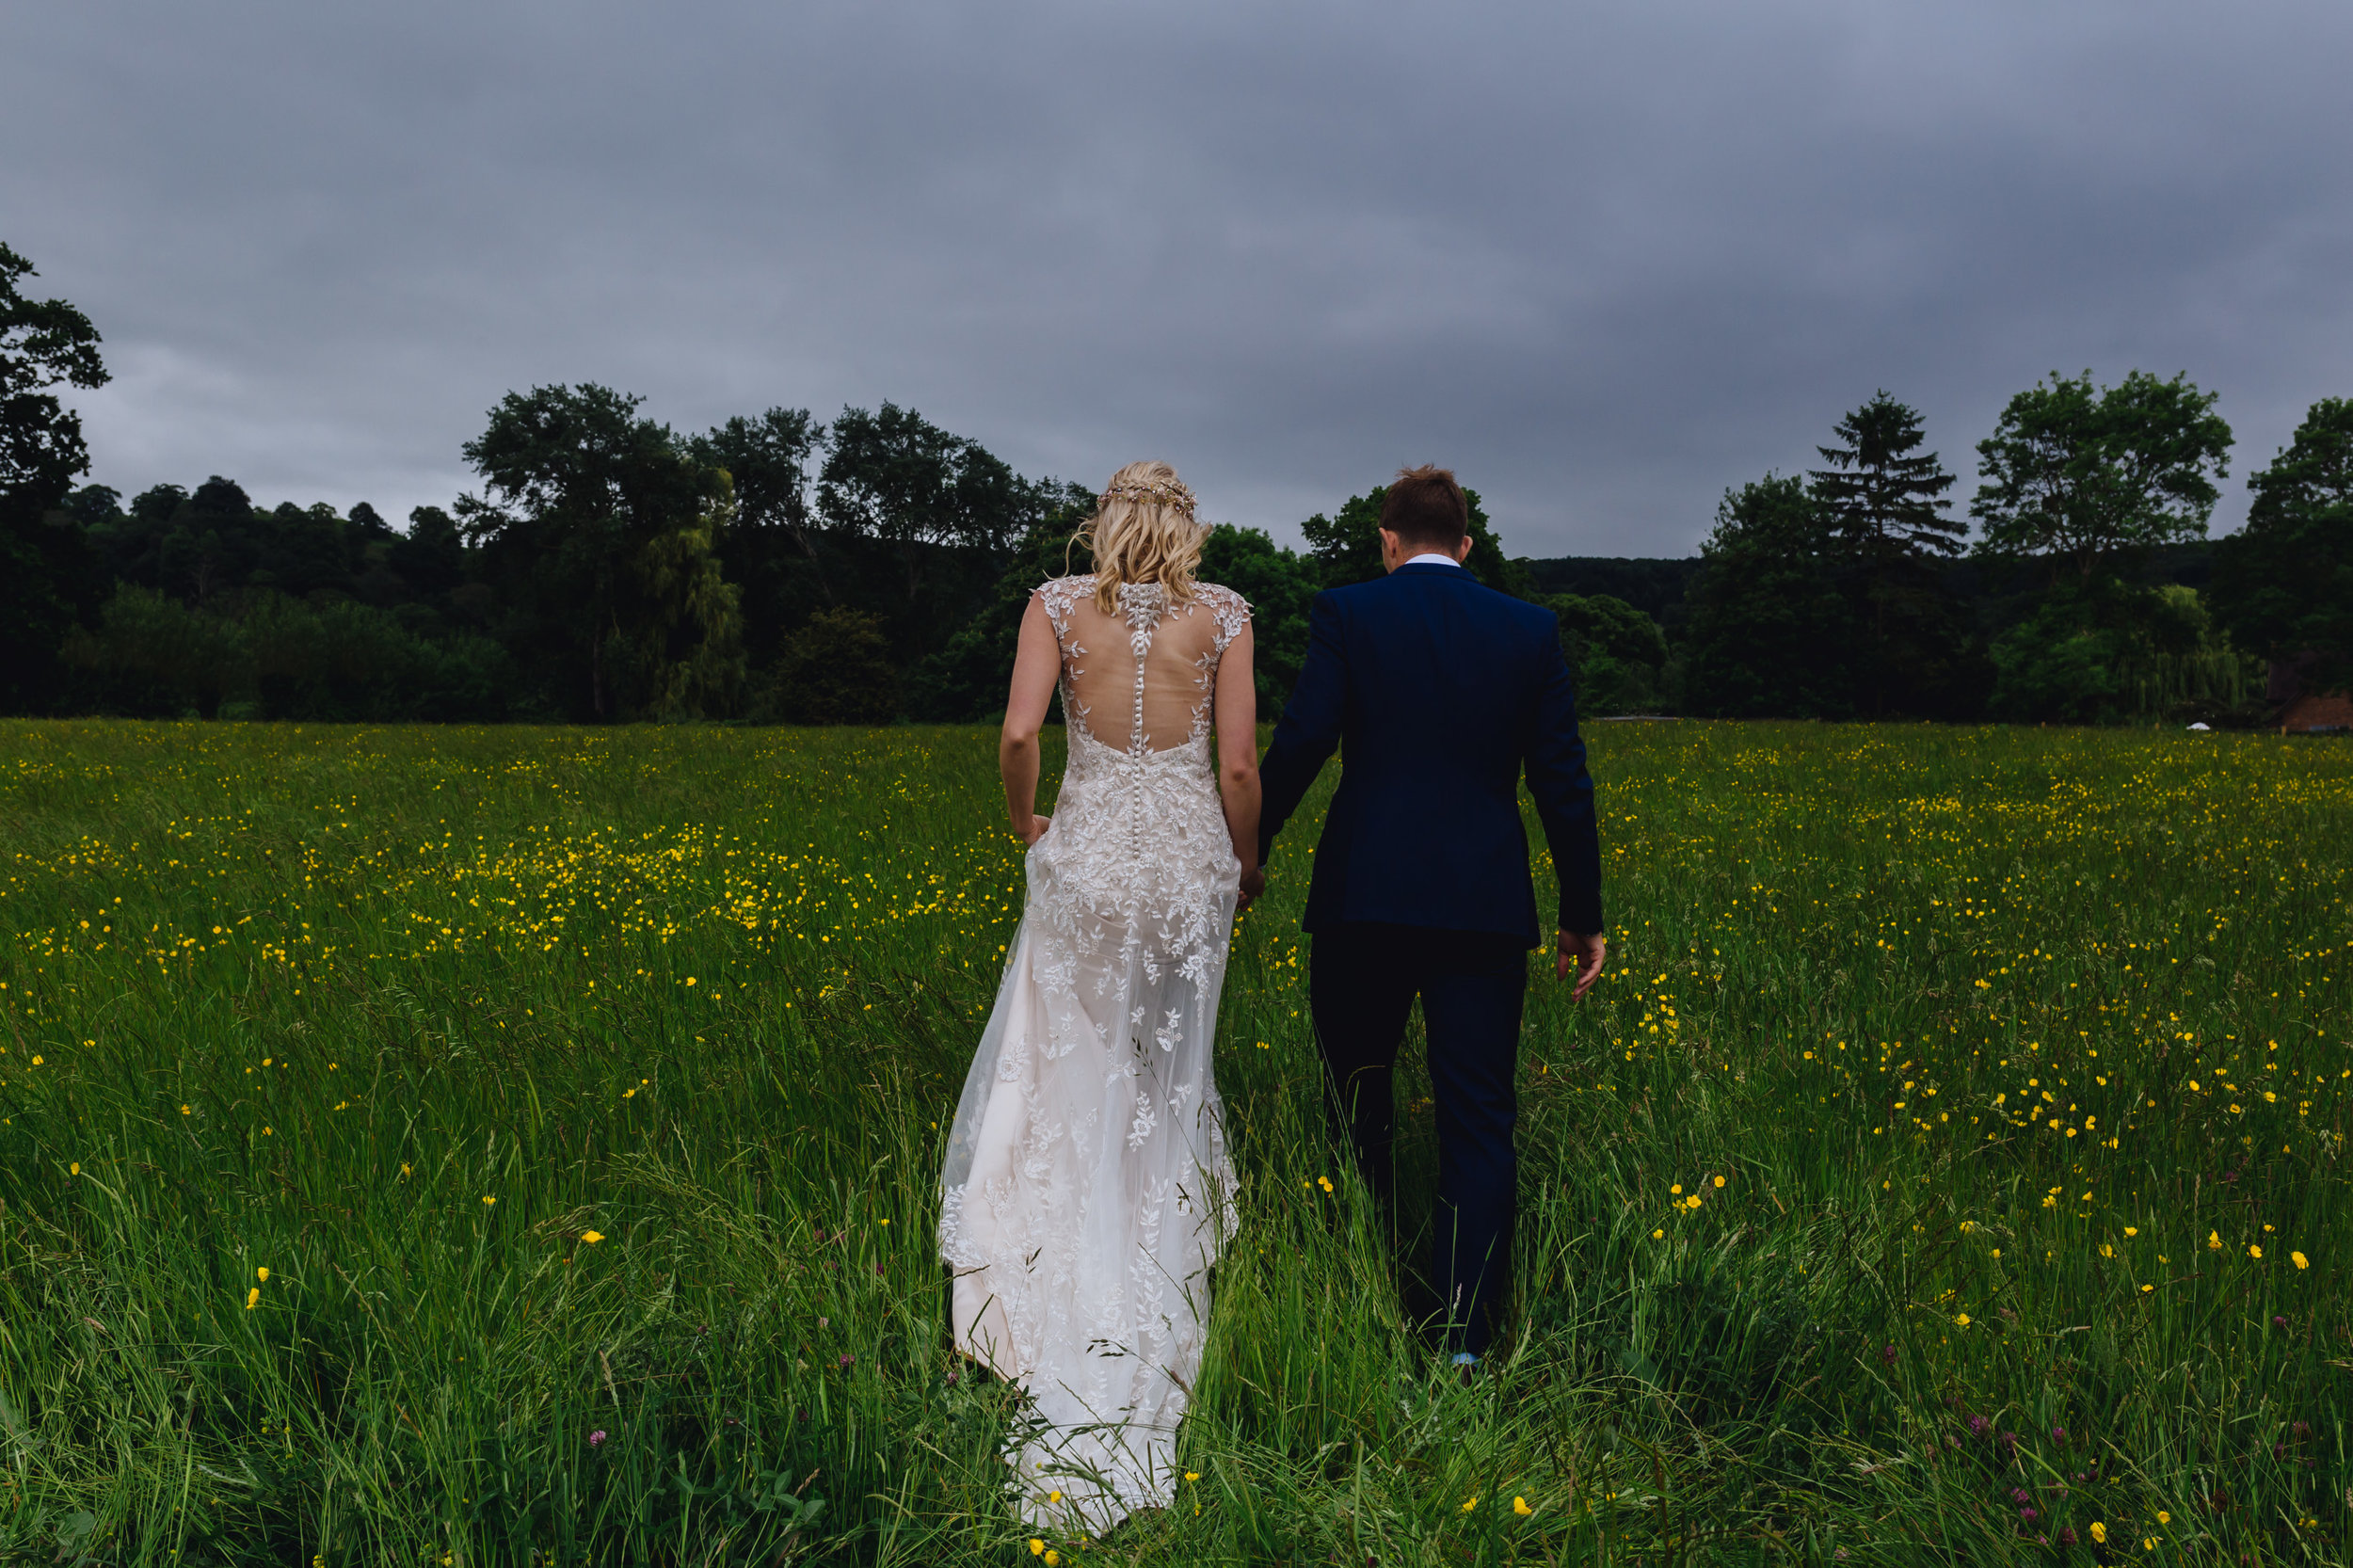 FIONA & MATTHEW - ROMANTIC GARDEN WEDDING |  THE COTSWOLDS